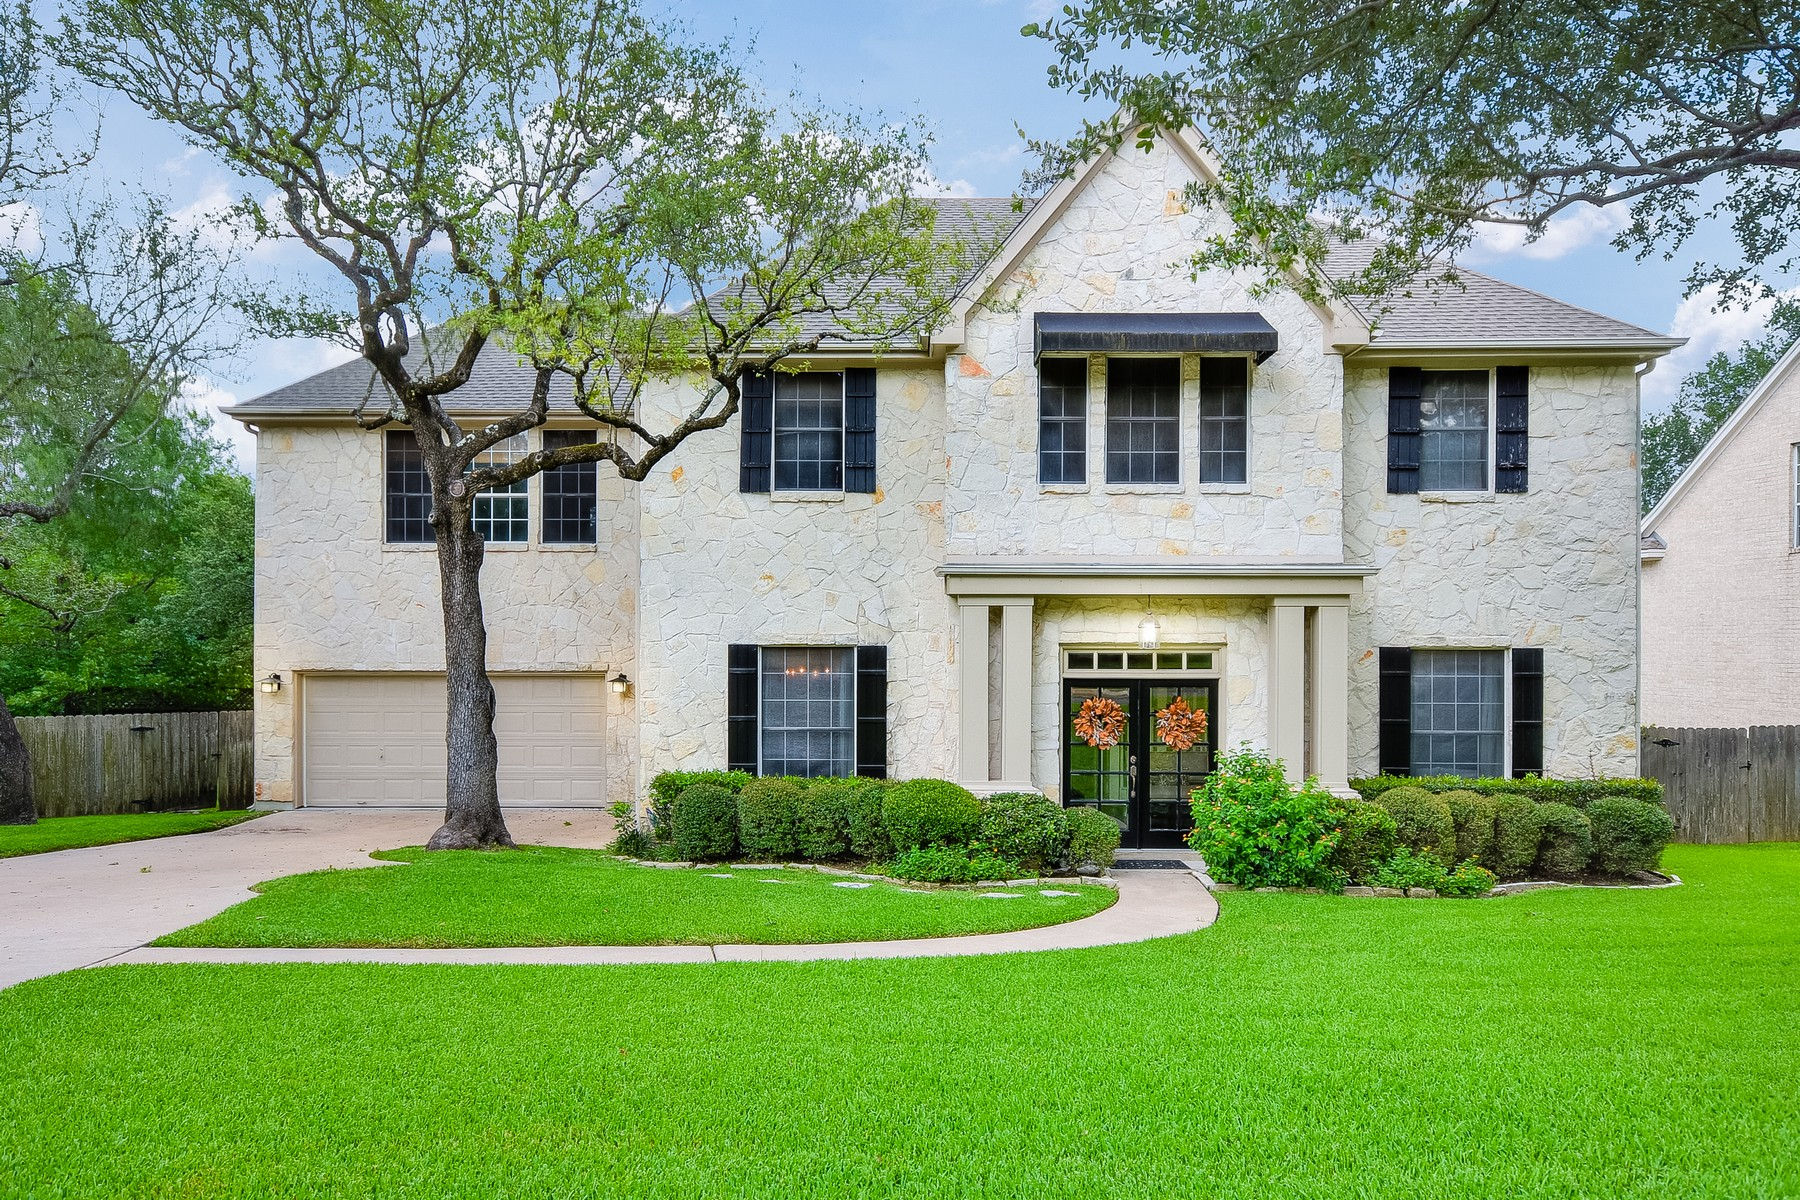 Single Family Home for Sale at Stylish Home in Woods of Westlake Heights 1617 Chesterwood Cv Austin, Texas 78746 United States